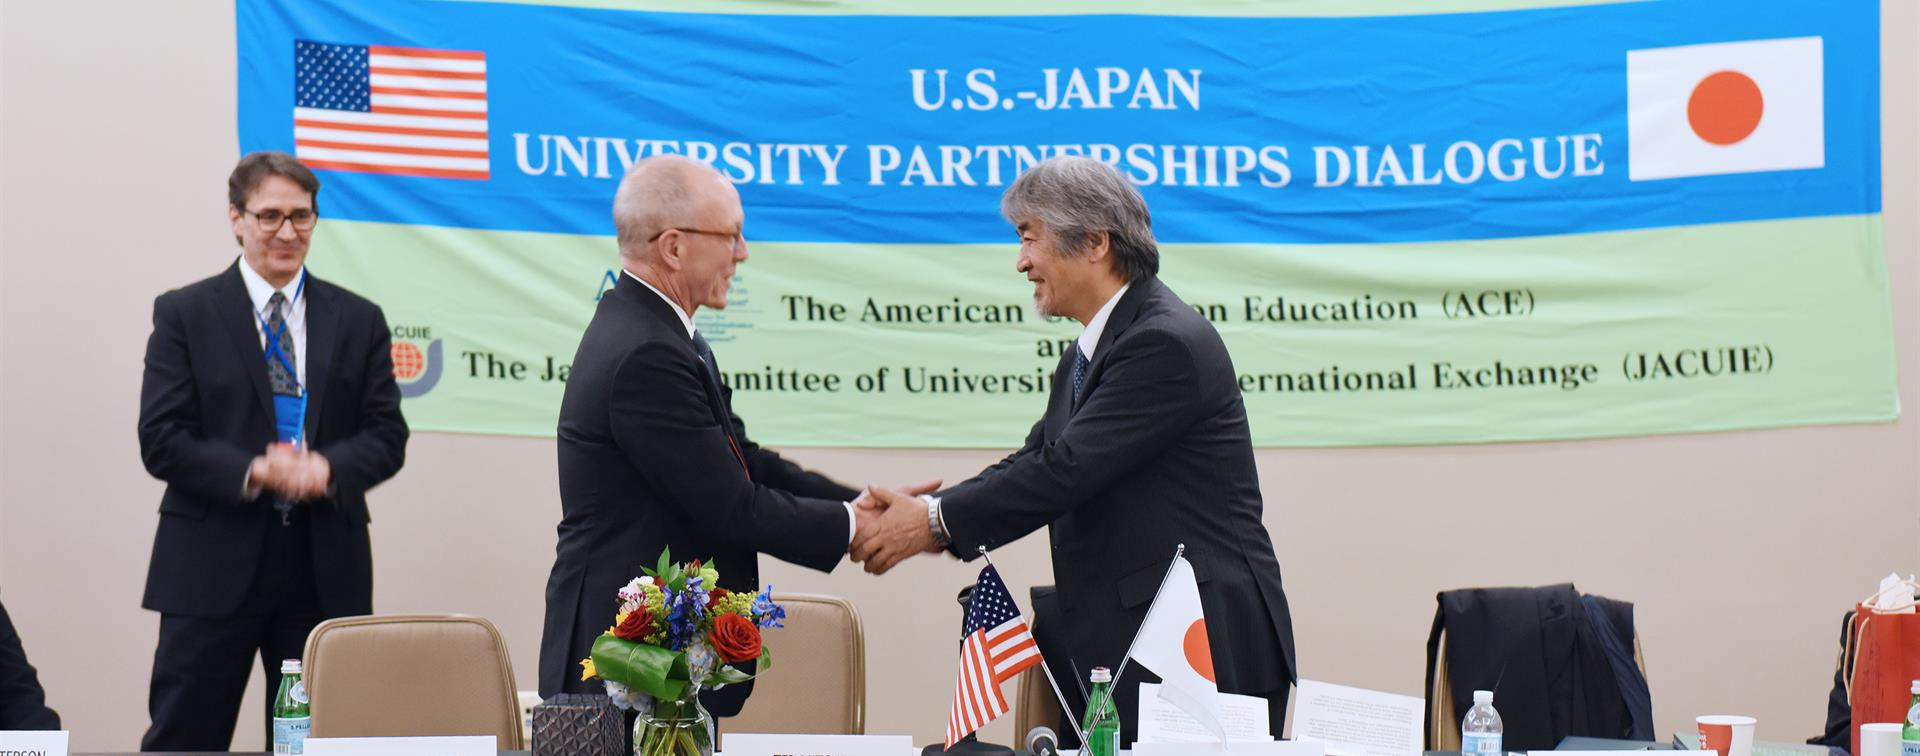 Picture of Ted Mitchell shaking hands with Juichi Yamagiwa.